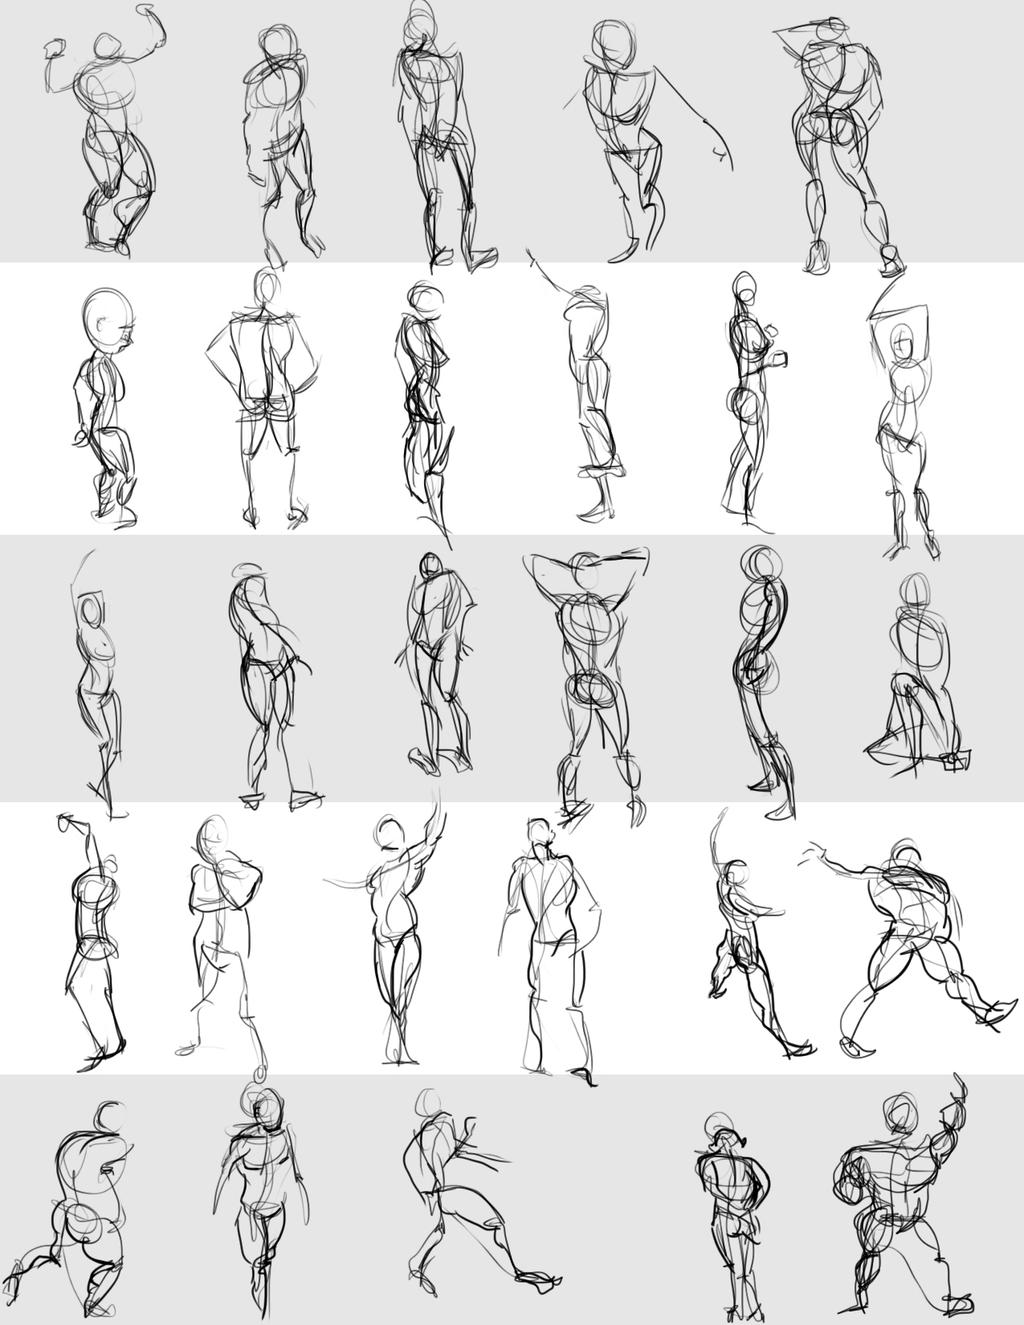 Gesture Drawings June 8 2014 (A) by bgates87 on deviantART